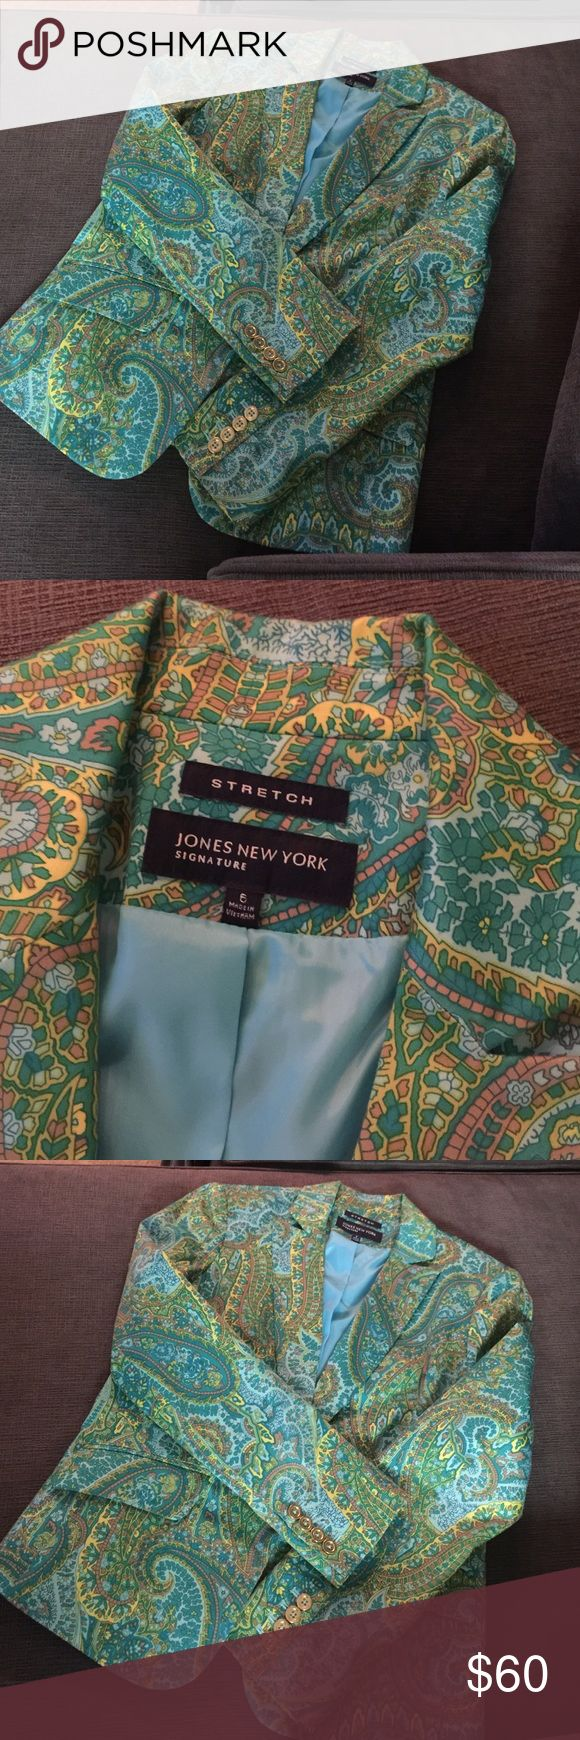 Beautiful printed blazer✨ Jones New York signature multicolor but mainly green blazer. Gold button details at sleeves. Blazer is in excellent condition.. Jones New York Jackets & Coats Blazers